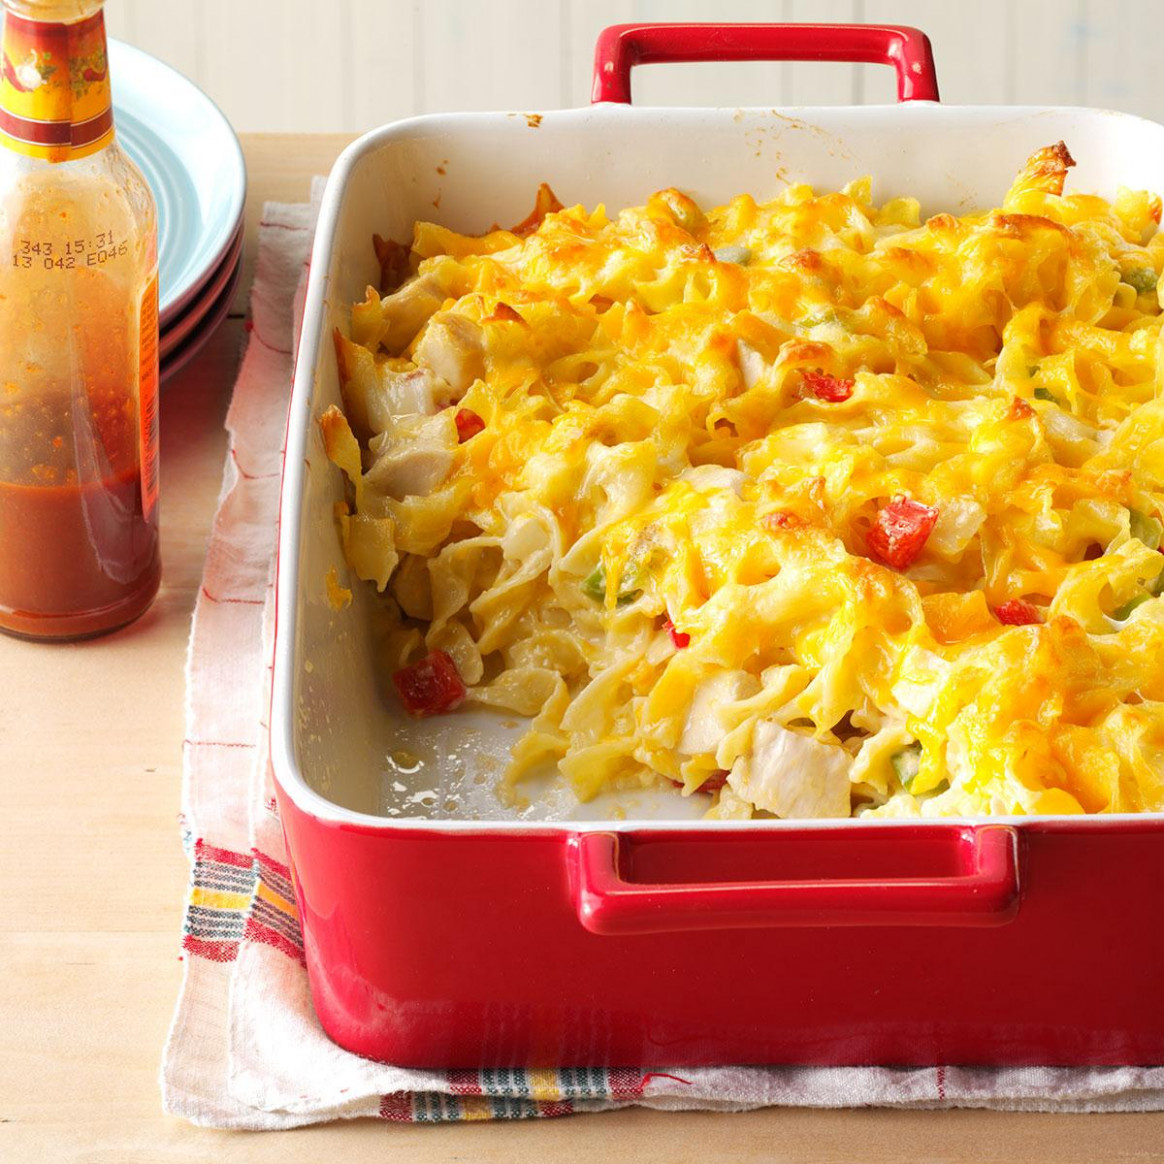 Chicken Noodle Casserole Recipe | Taste of Home - chicken recipes casserole